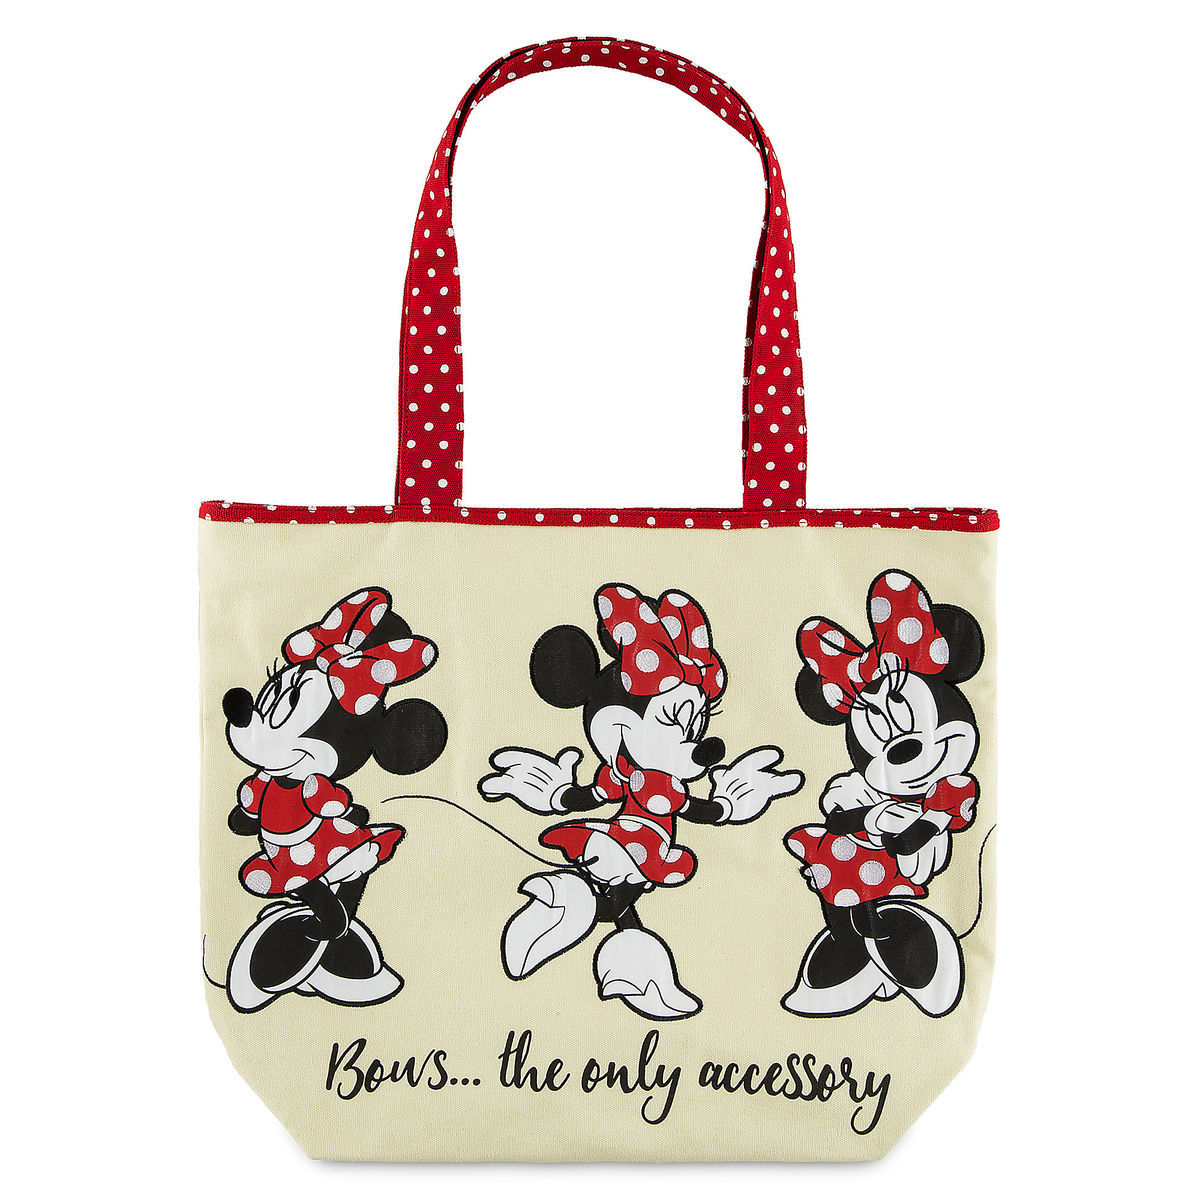 Disney Tote Bag - Minnie Mouse Canvas Tote - Bows the Only Accessory